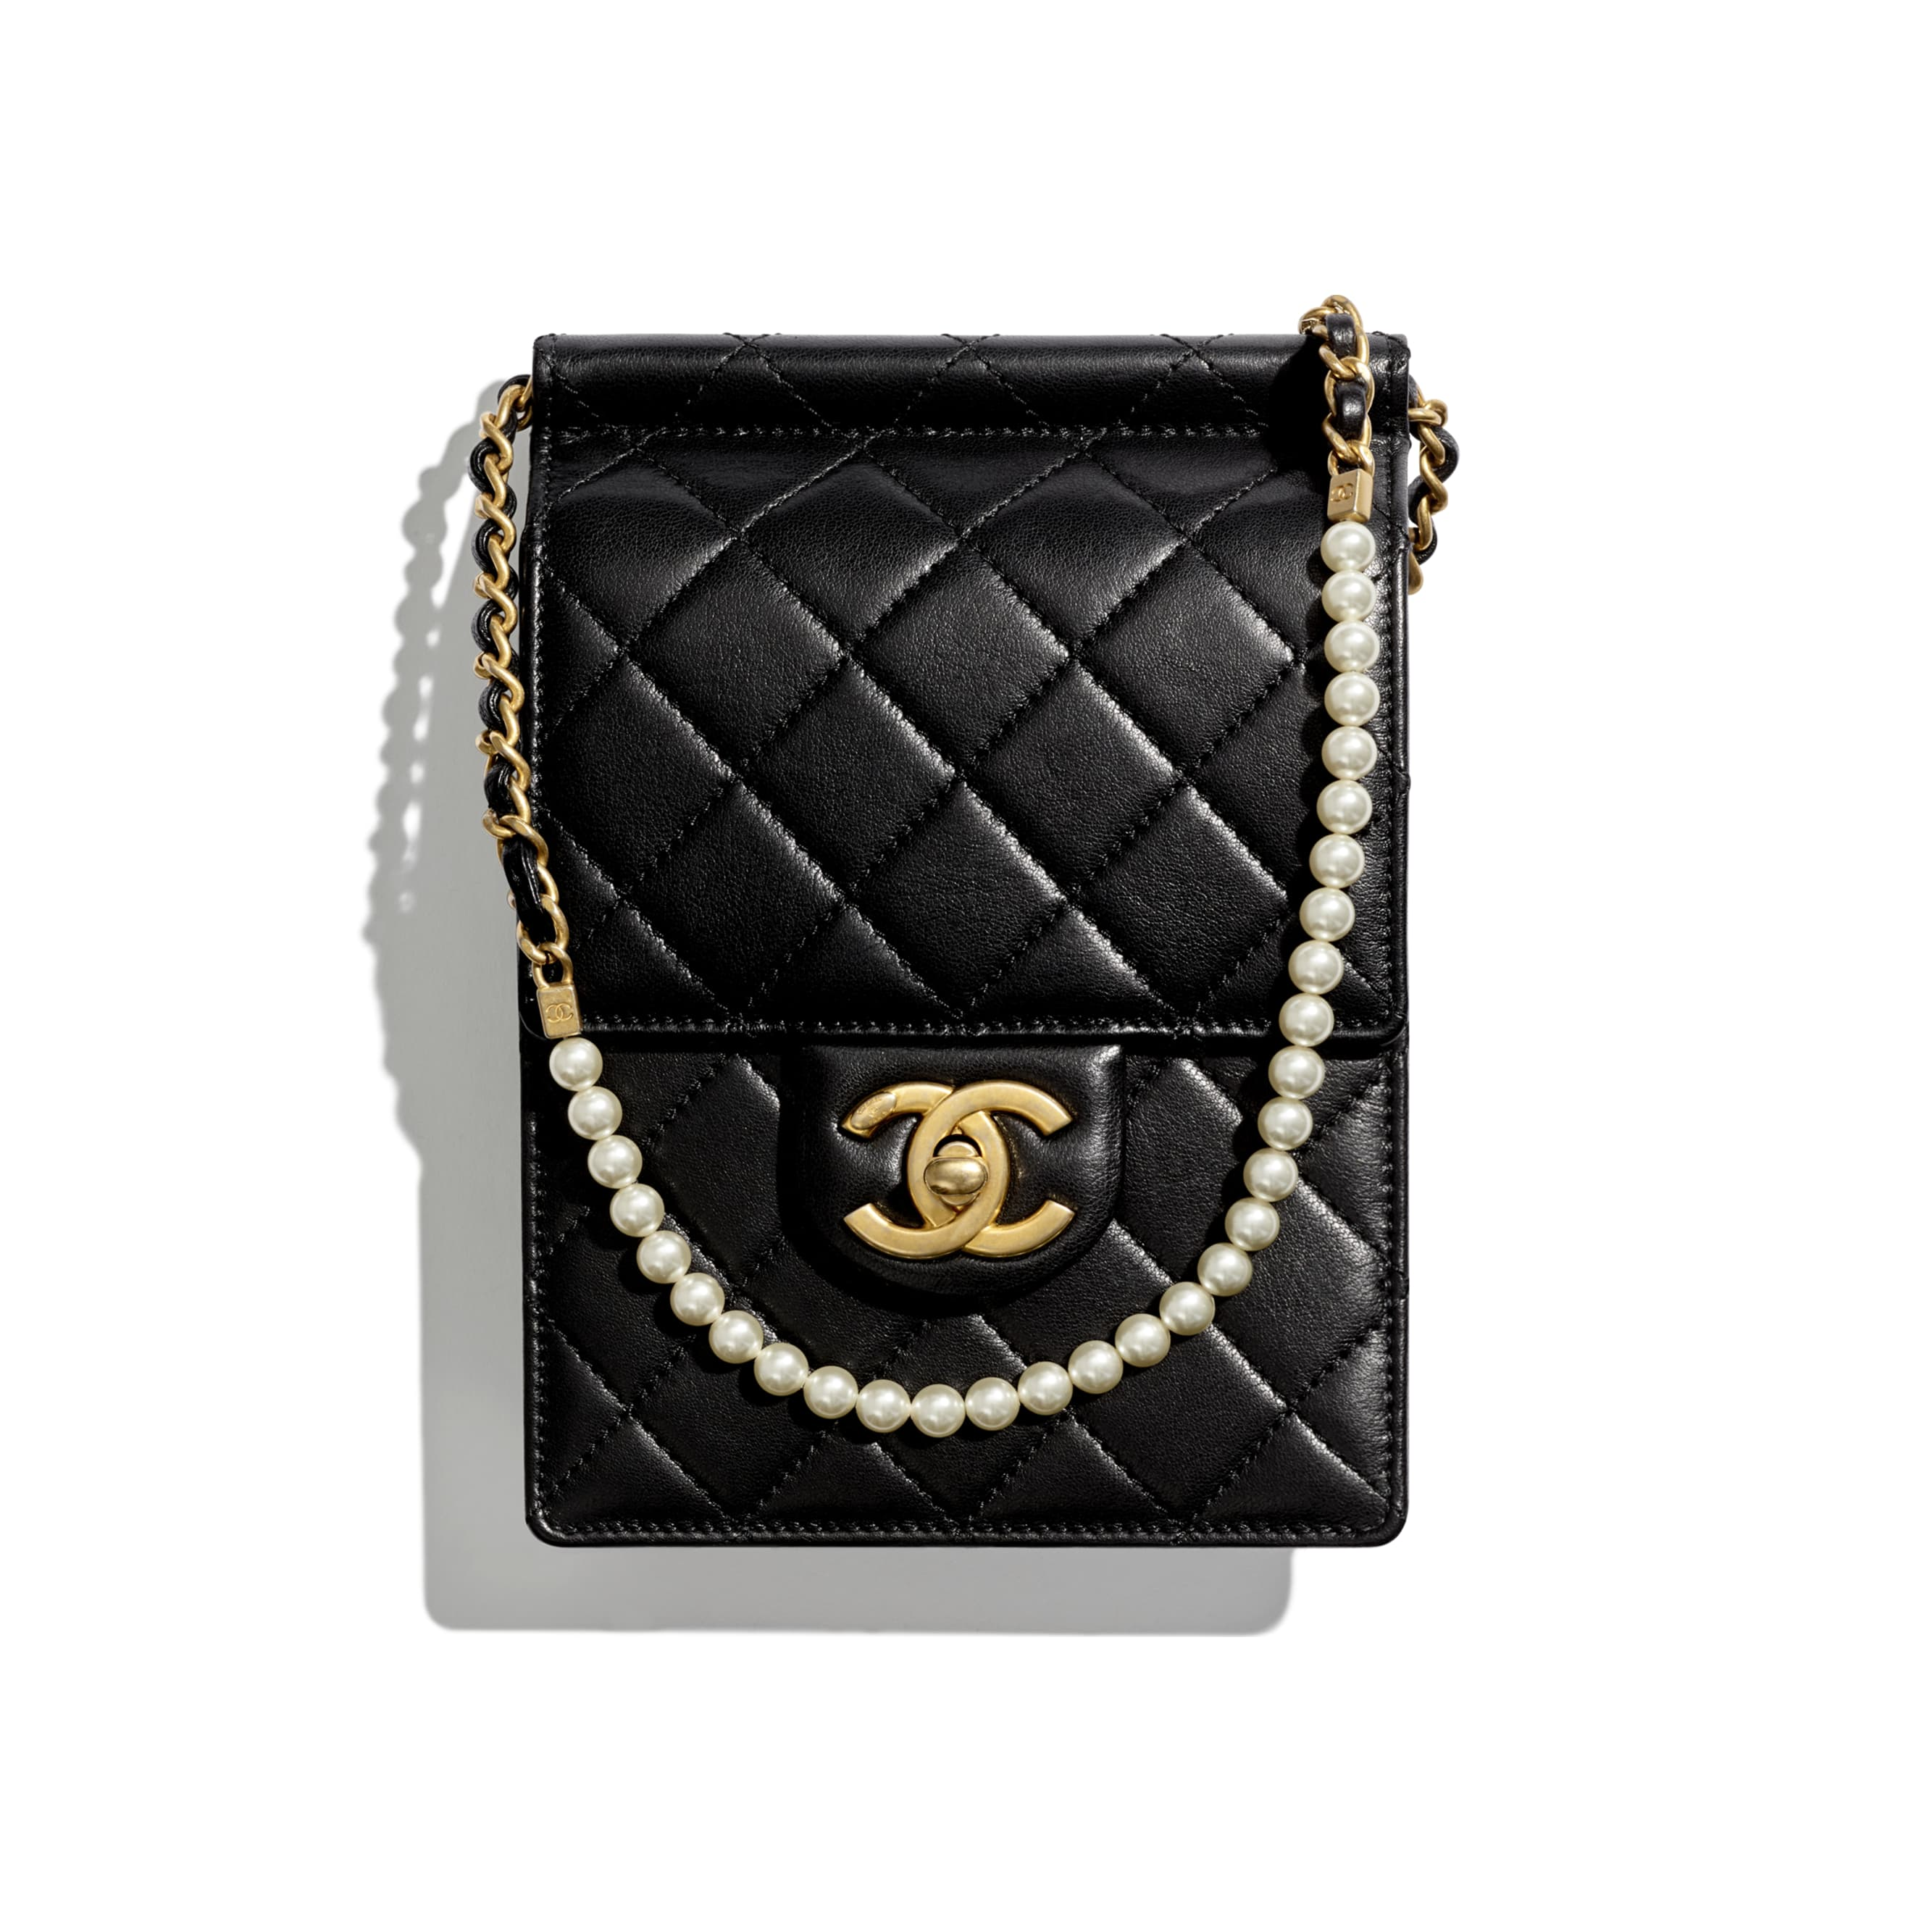 Clutch with Chain - Black - Lambskin, Imitation Pearls & Gold-Tone Metal - Default view - see standard sized version